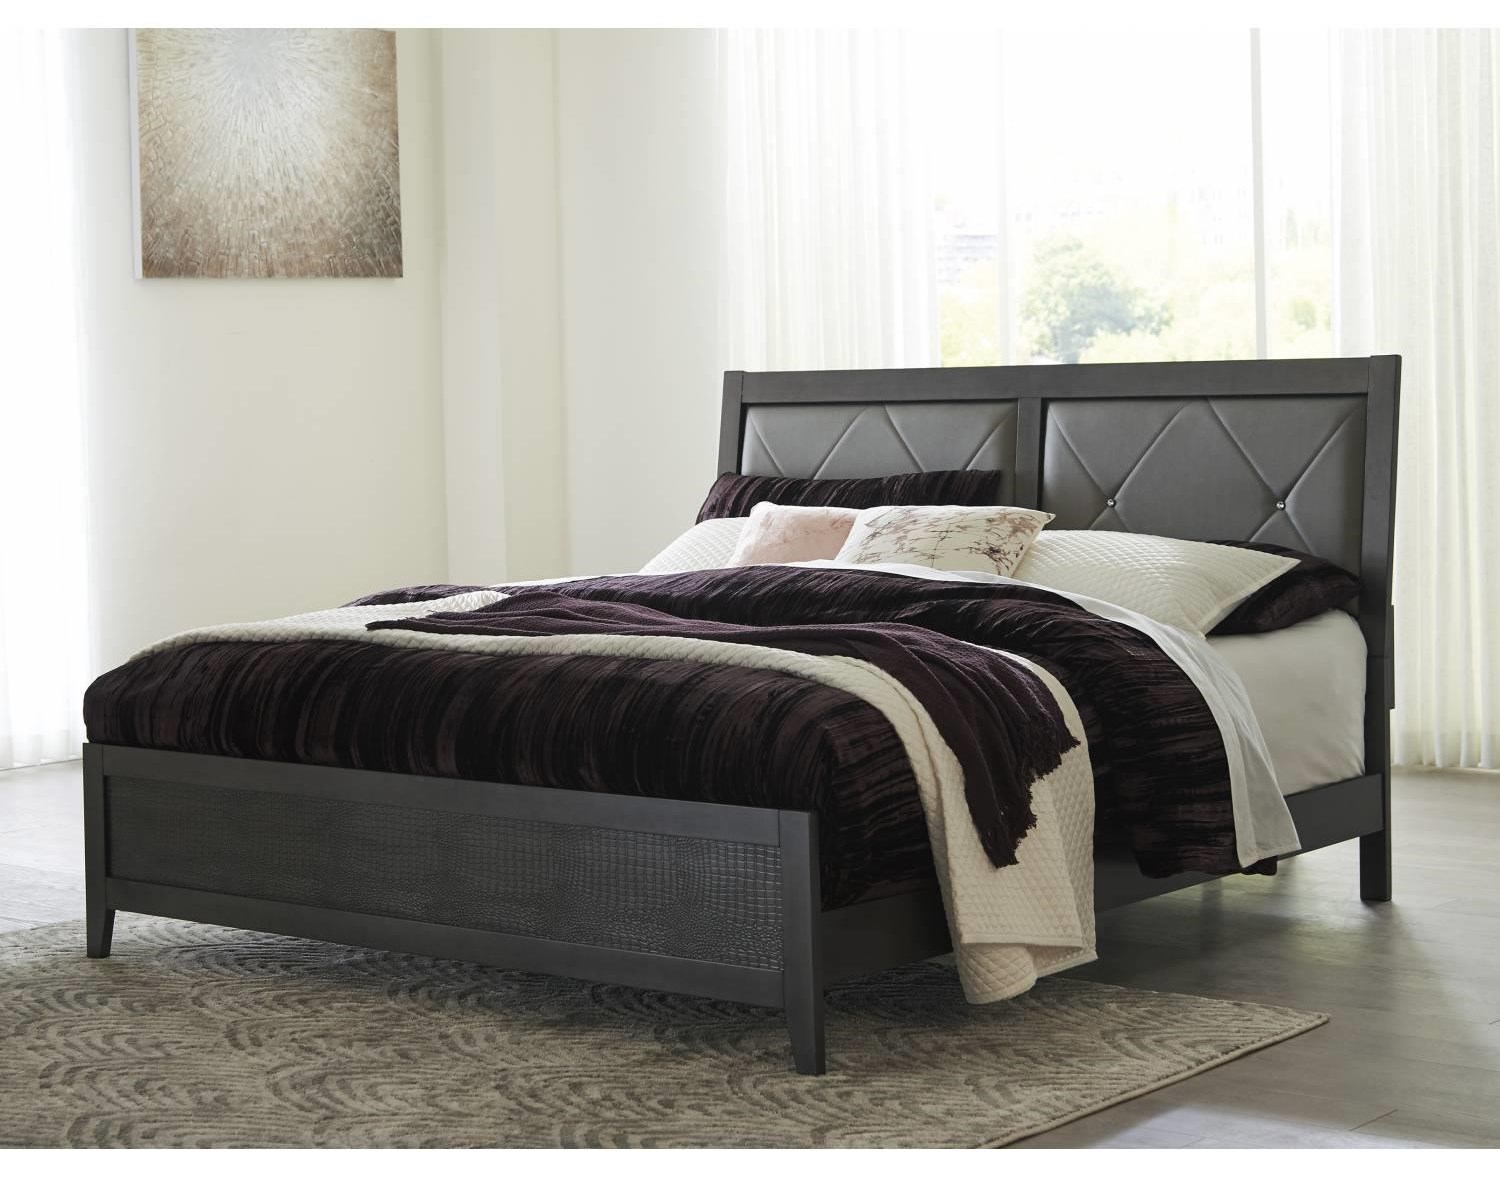 Delmont Delmont King Bed by Ashley at Morris Home